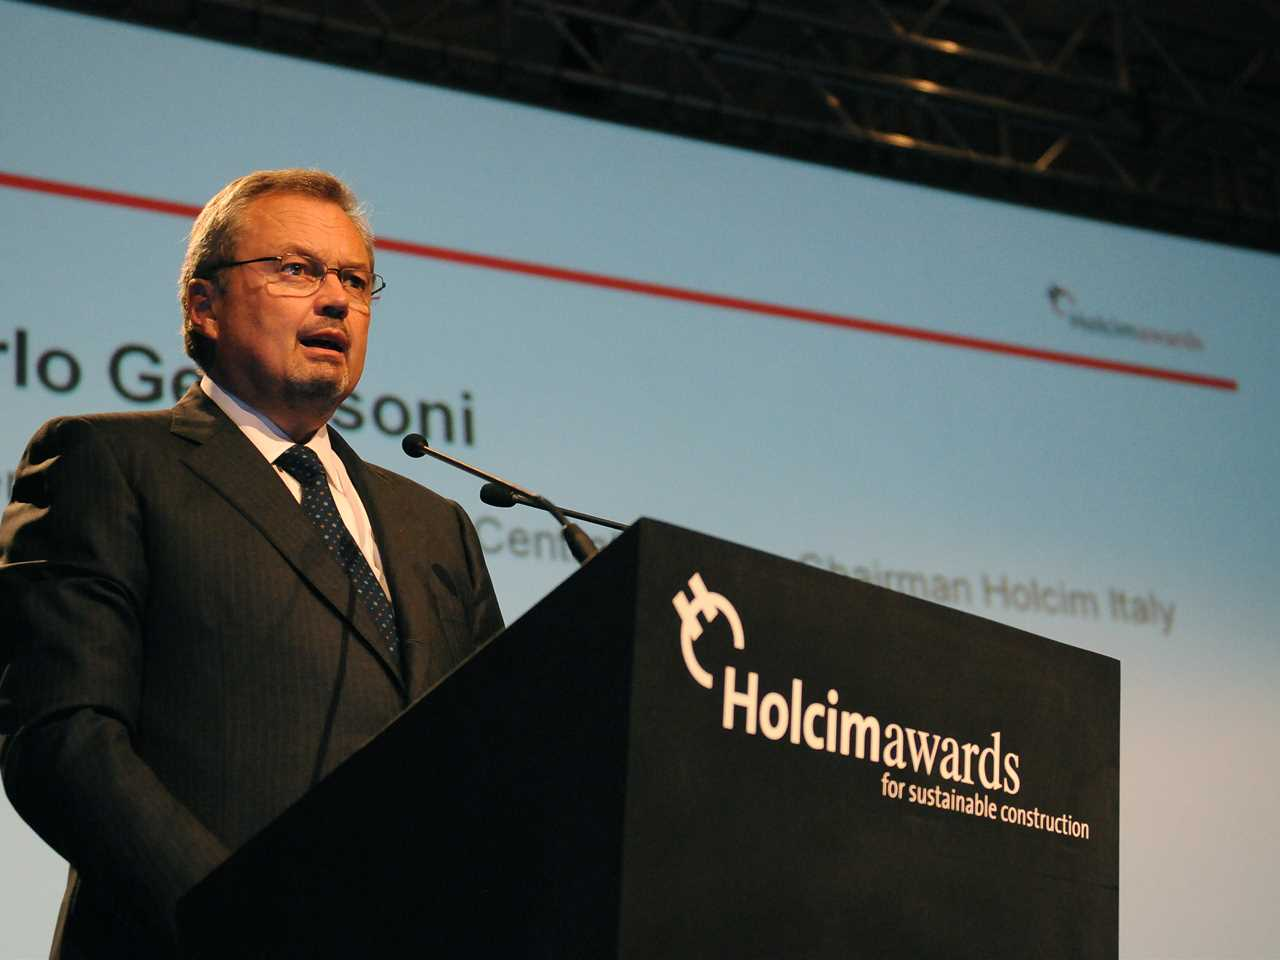 Carlo Gervasoni, General Manager, Holcim Central Europe – closing remarks and farewell.